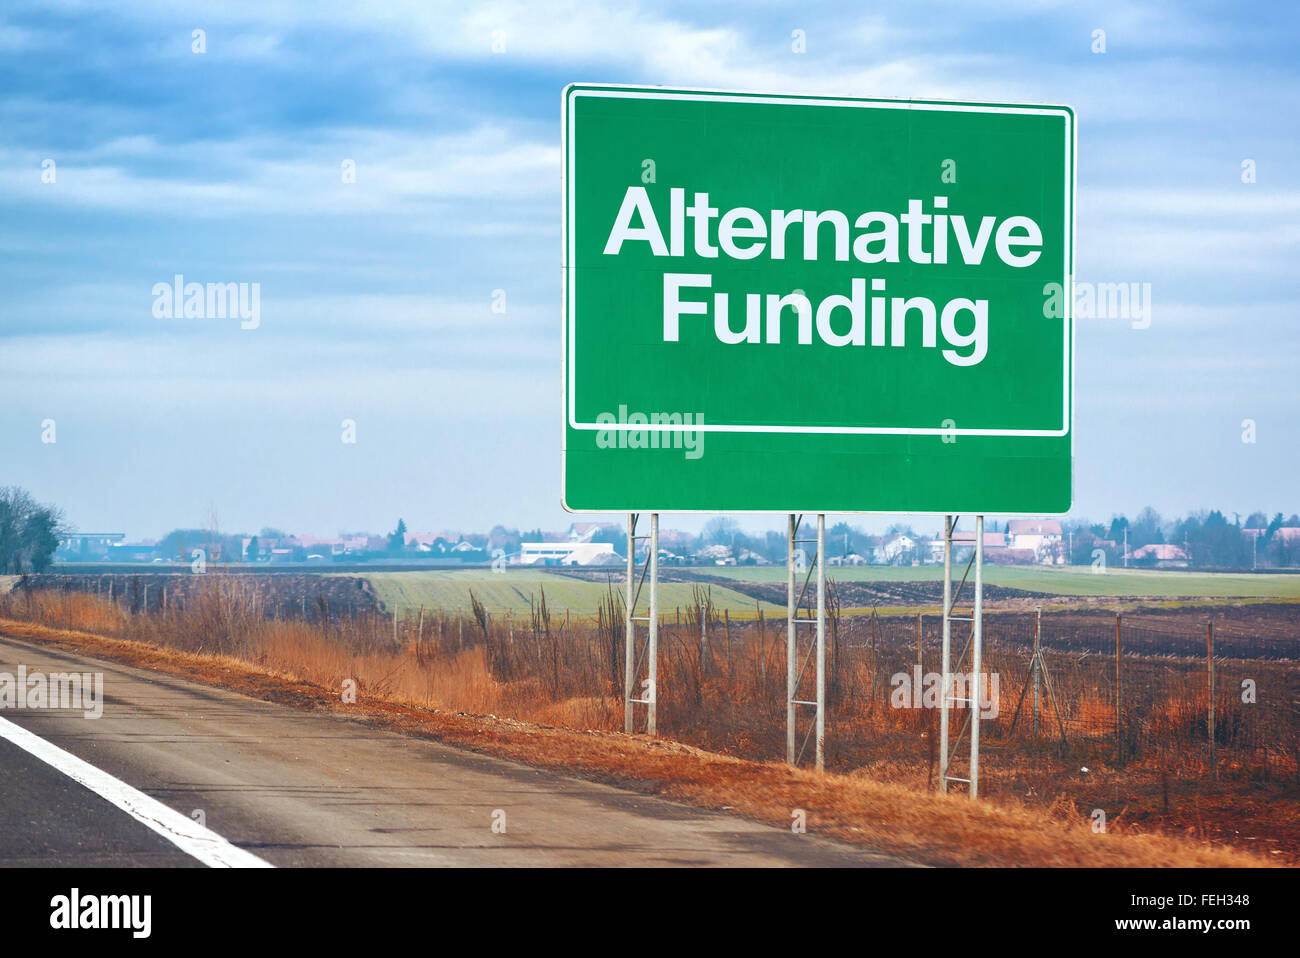 Alternative funding on road sign, entrepreneurship and business concept with road sign by the highway - Stock Image